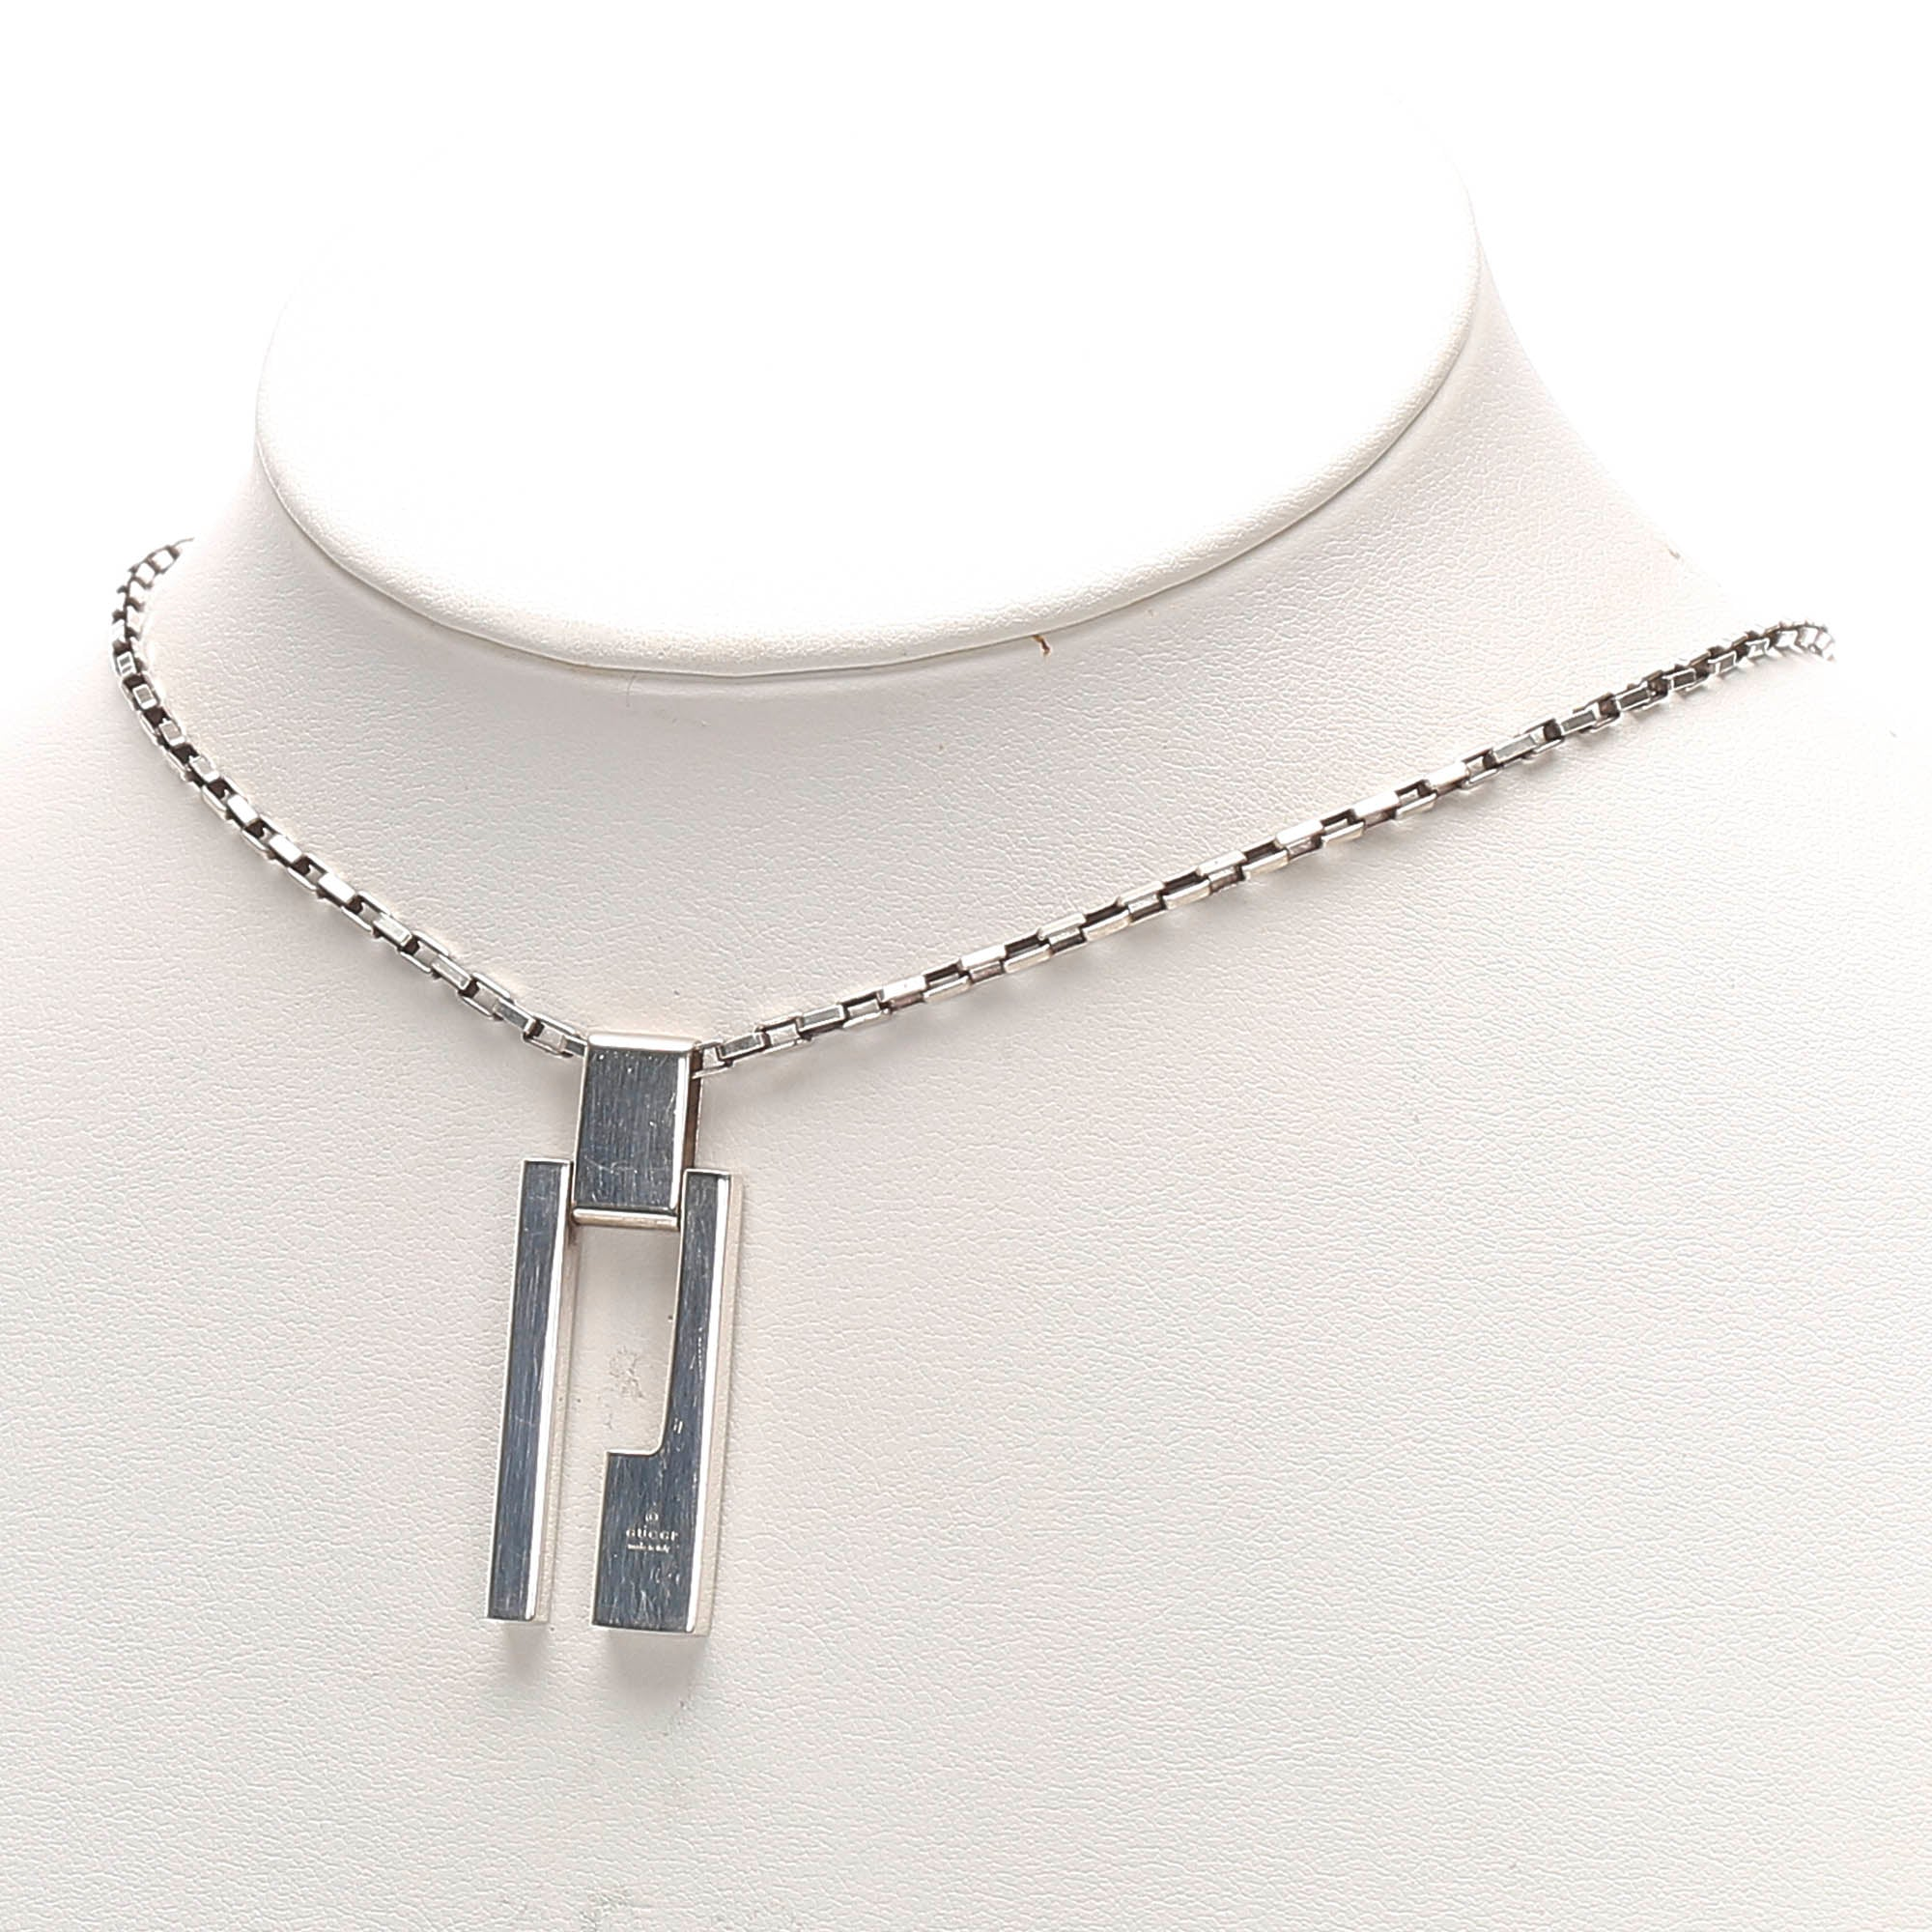 Gucci Silver Silver-Tone Necklace